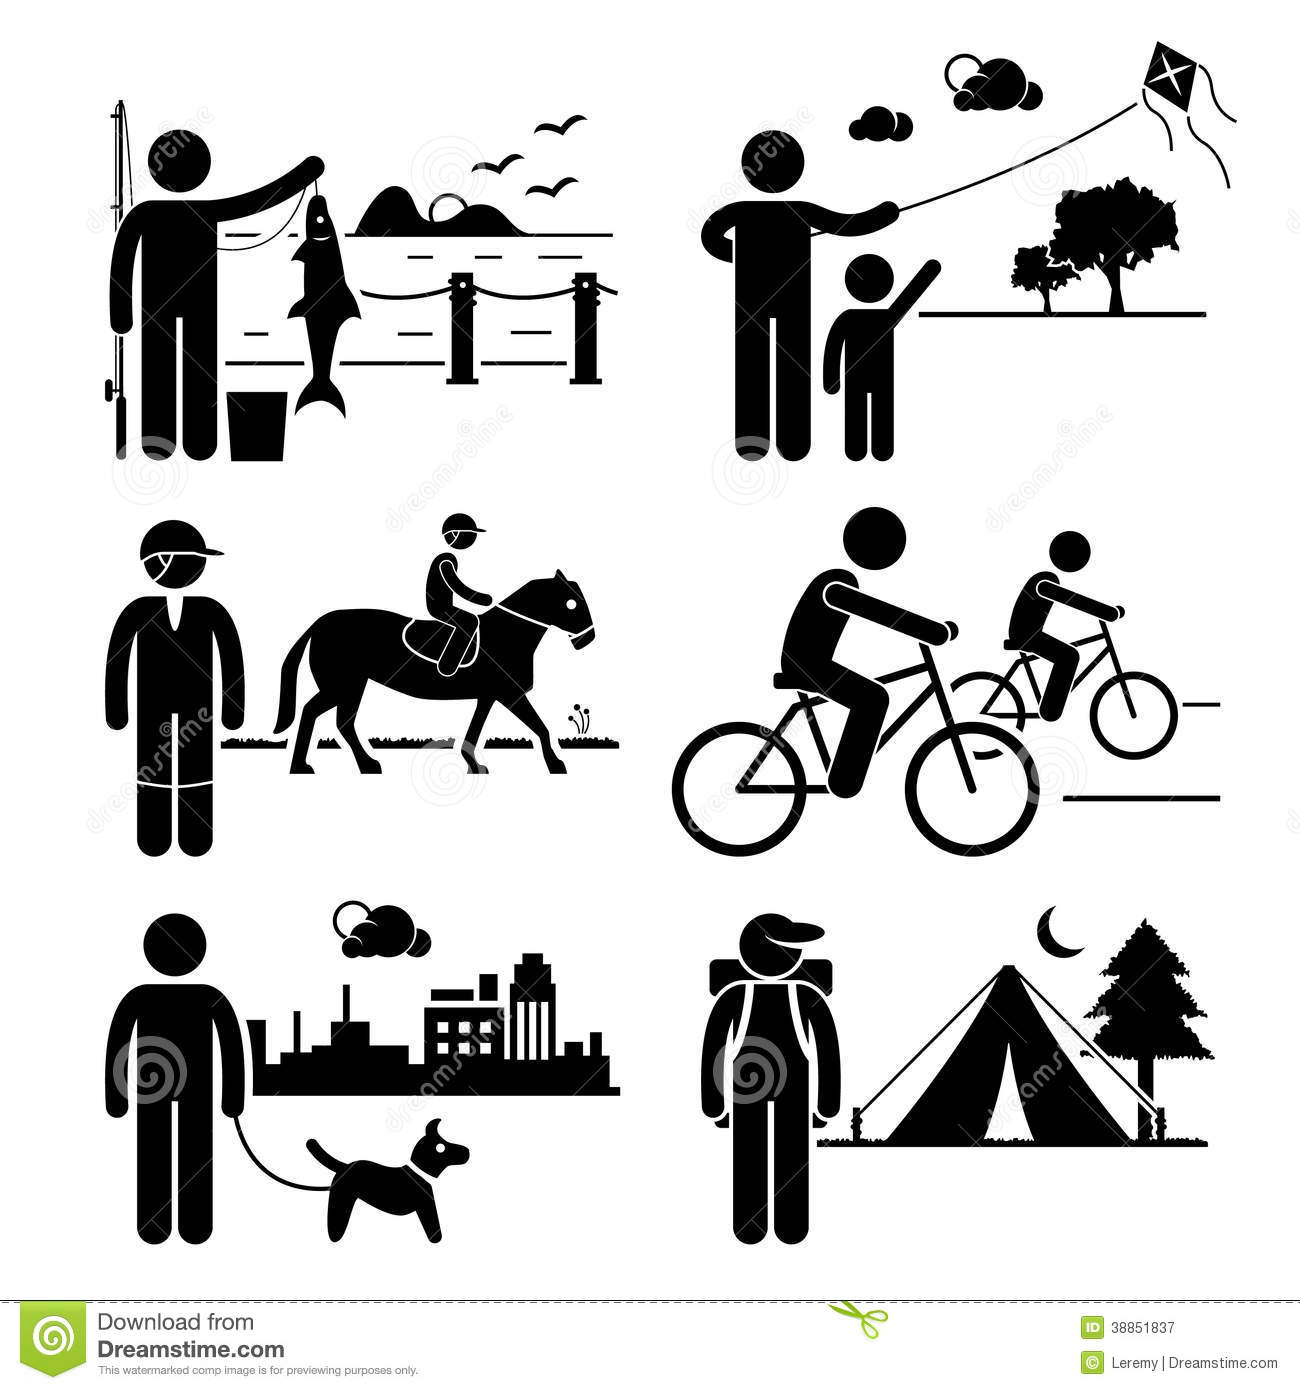 Pencil and in color. Activities clipart human activity